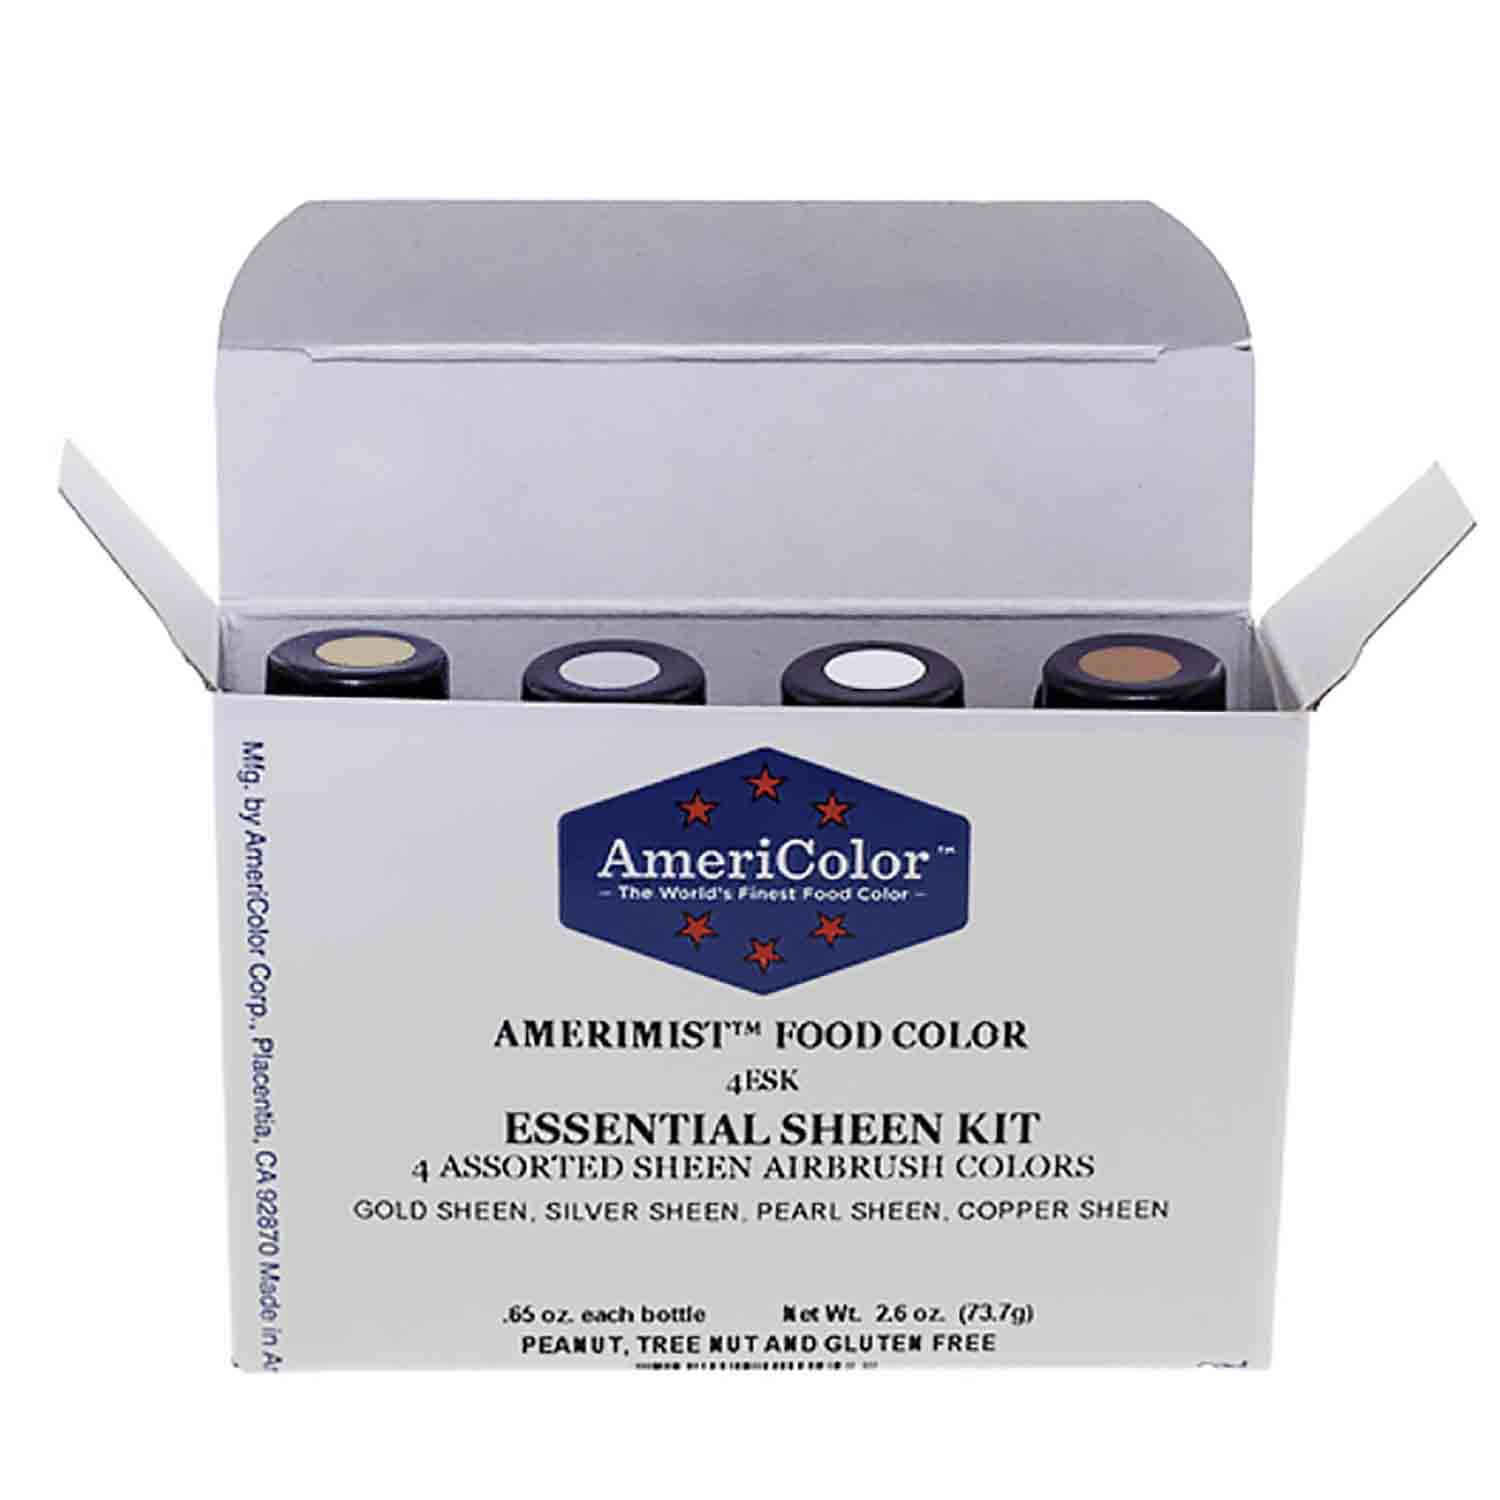 Essential Sheen AmeriMist™ Air Brush Food Color Kit